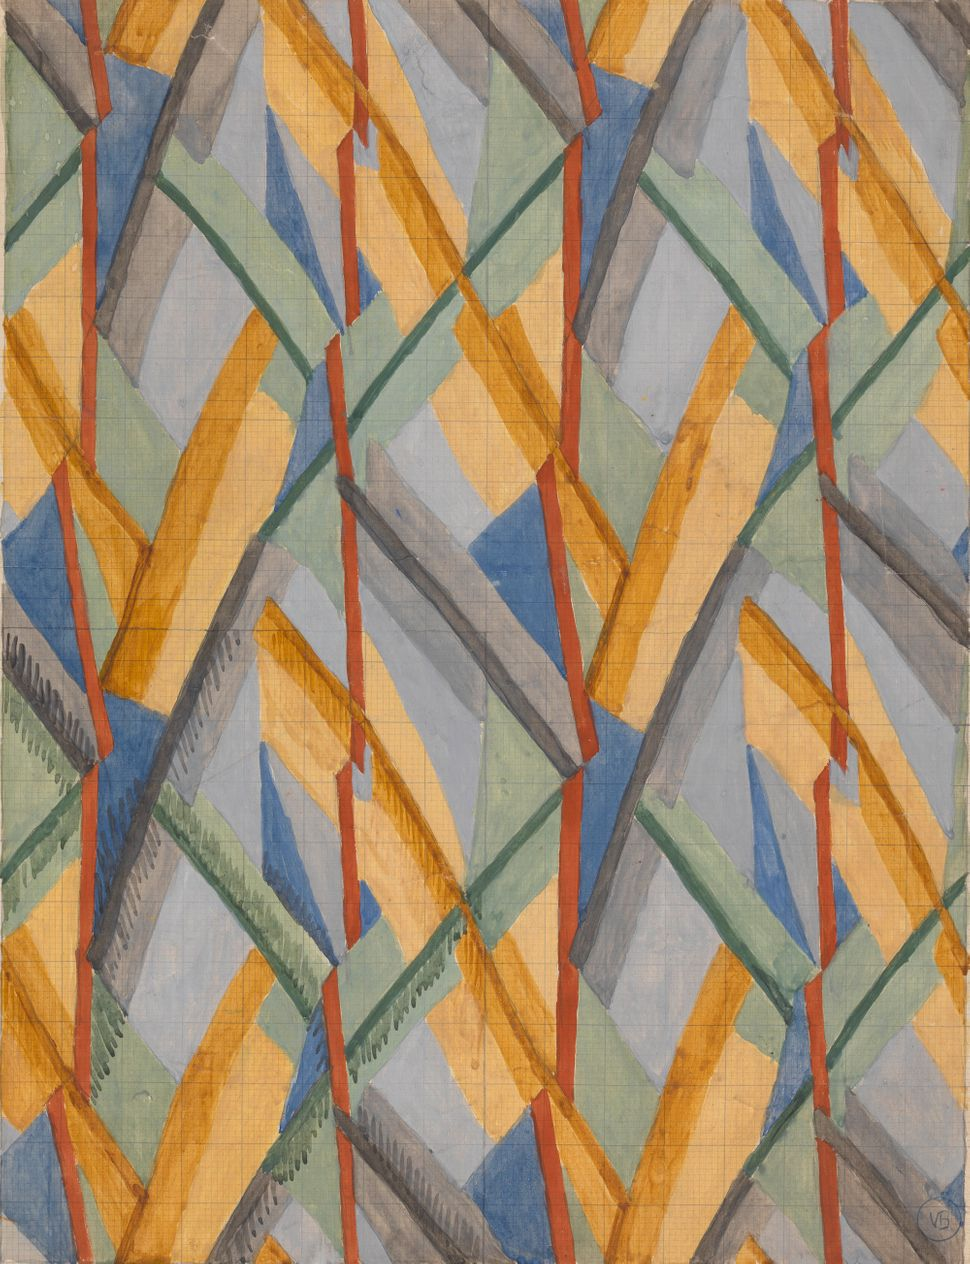 Vanessa Bell 1879–1961, Design for Omega Workshops Fabric, 1913, Watercolor, gouache, and graphite, Yale Center for Bri